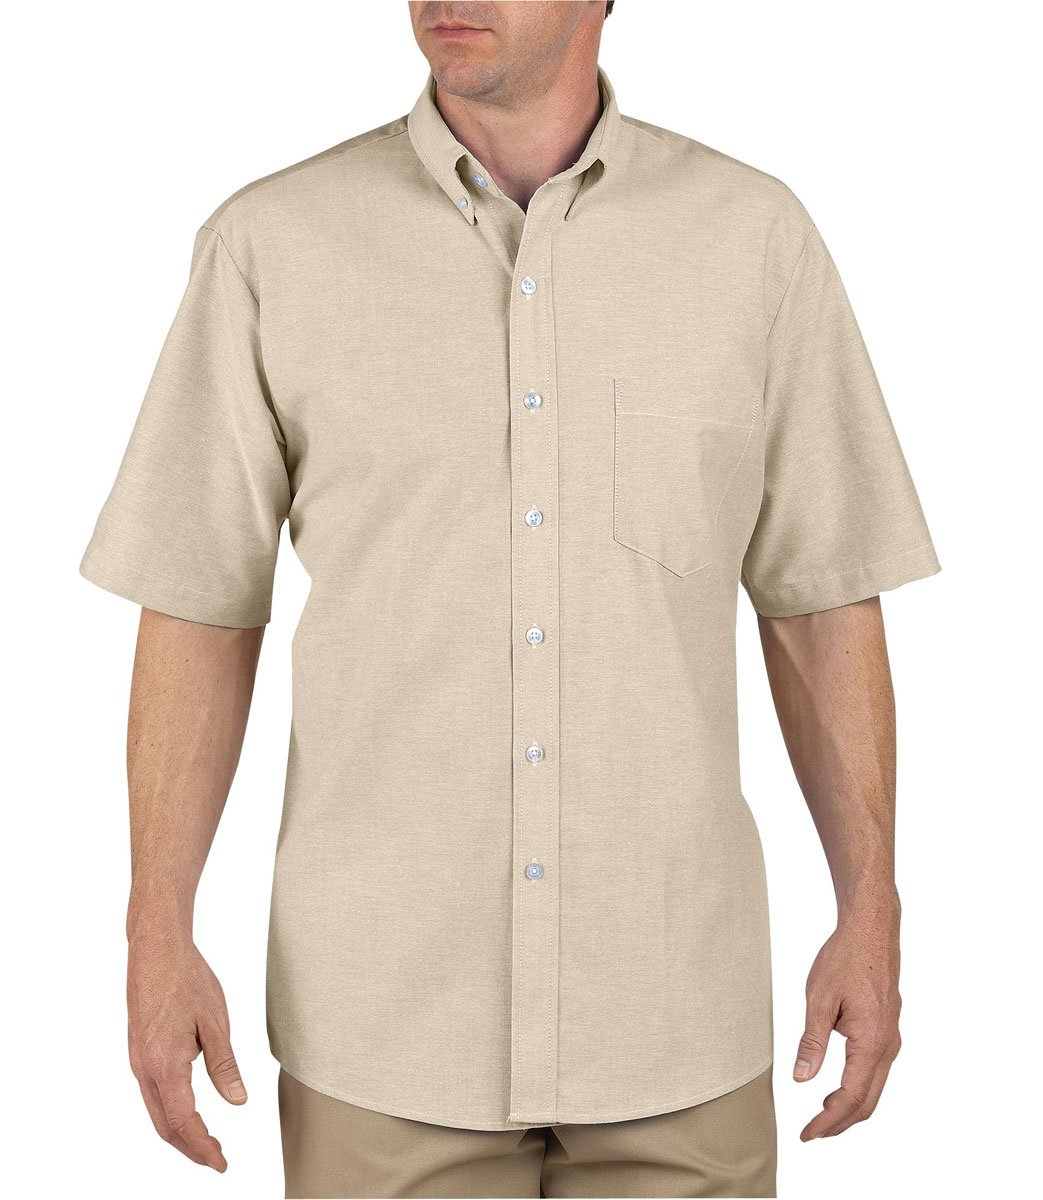 Dickies Occupational Workwear SS46TK 155 Polyester/ Cotton Men's Button-Down Short Sleeve Oxford Shirt, 15-1/ 2'' Neck, Light Khaki